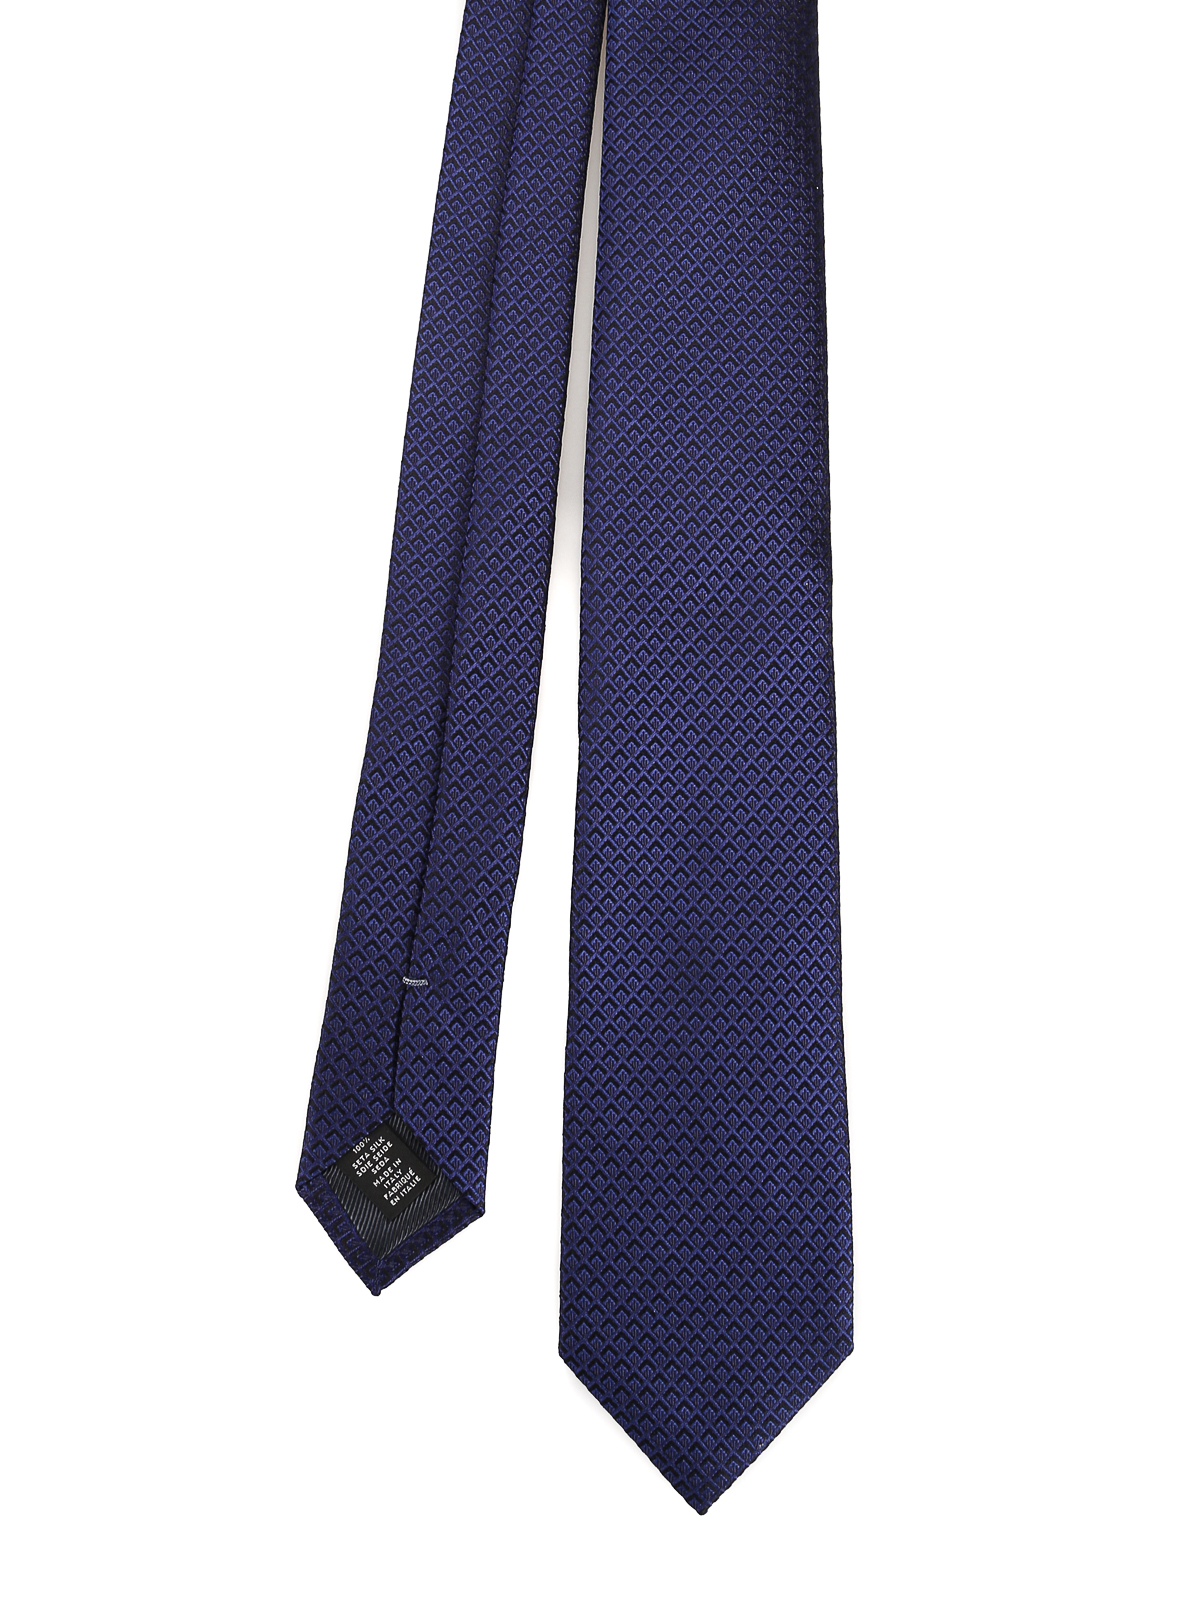 f7f141c0c4 Ermenegildo Zegna - Solid navy blue wrought silk tie - ties & bow ...